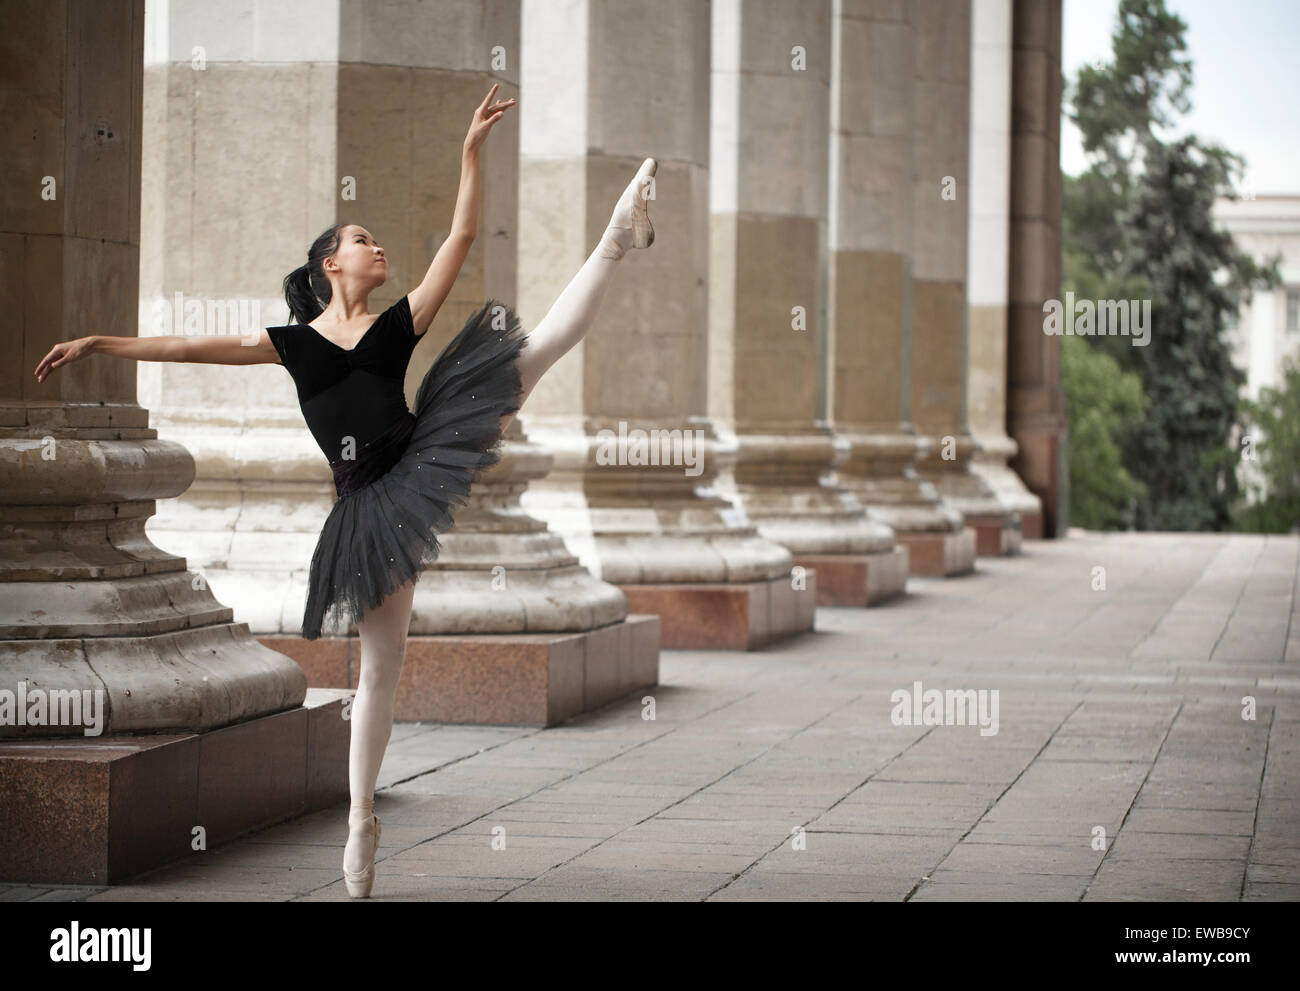 Girl ballerina flats standing on tiptoes on the street - Stock Image